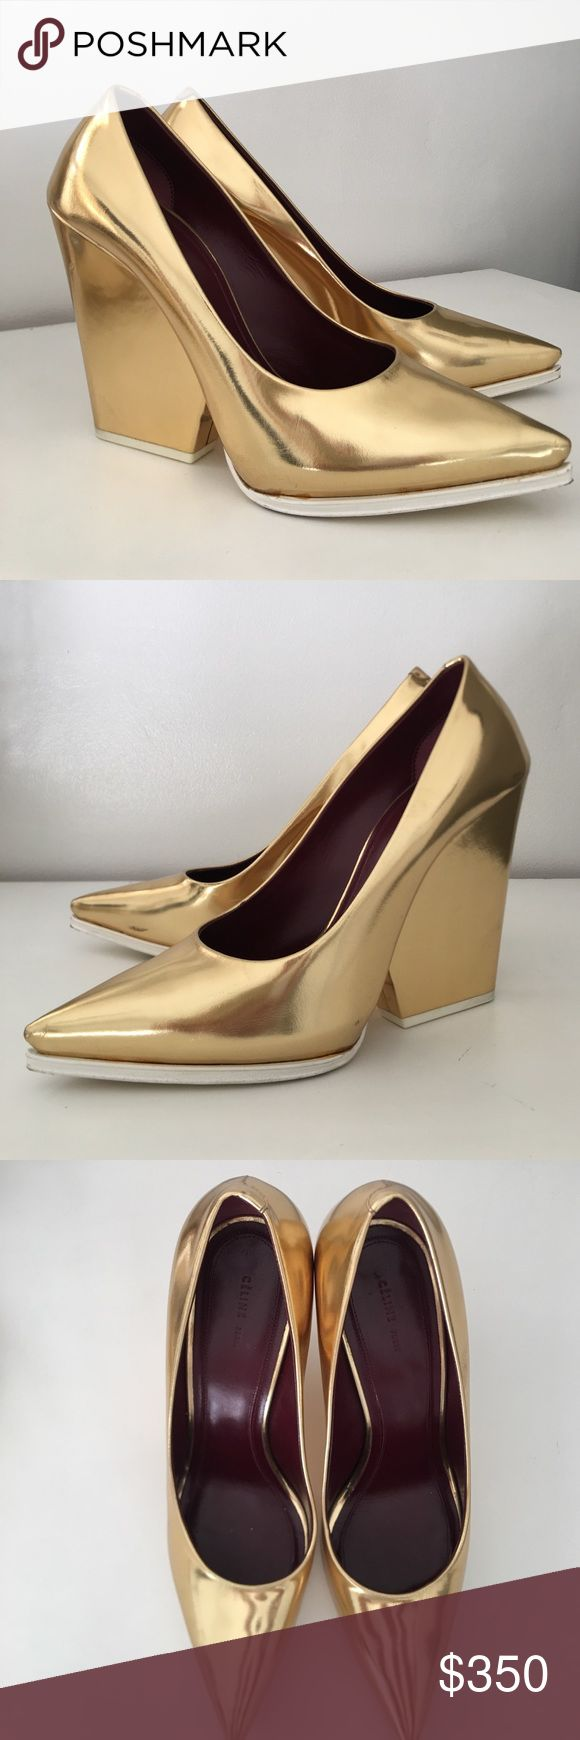 CELINE Gold Pointed Wedge Heels 9-9.5 Used once for a photo shoot! These run a bit narrow at the toes so fits more like a 9 than a 9.5. Minor scuffs around heel. Comes with original box (bought at Barneys) and authenticity card. Box has a few scuffs from being in my closet. Celine Shoes Heels